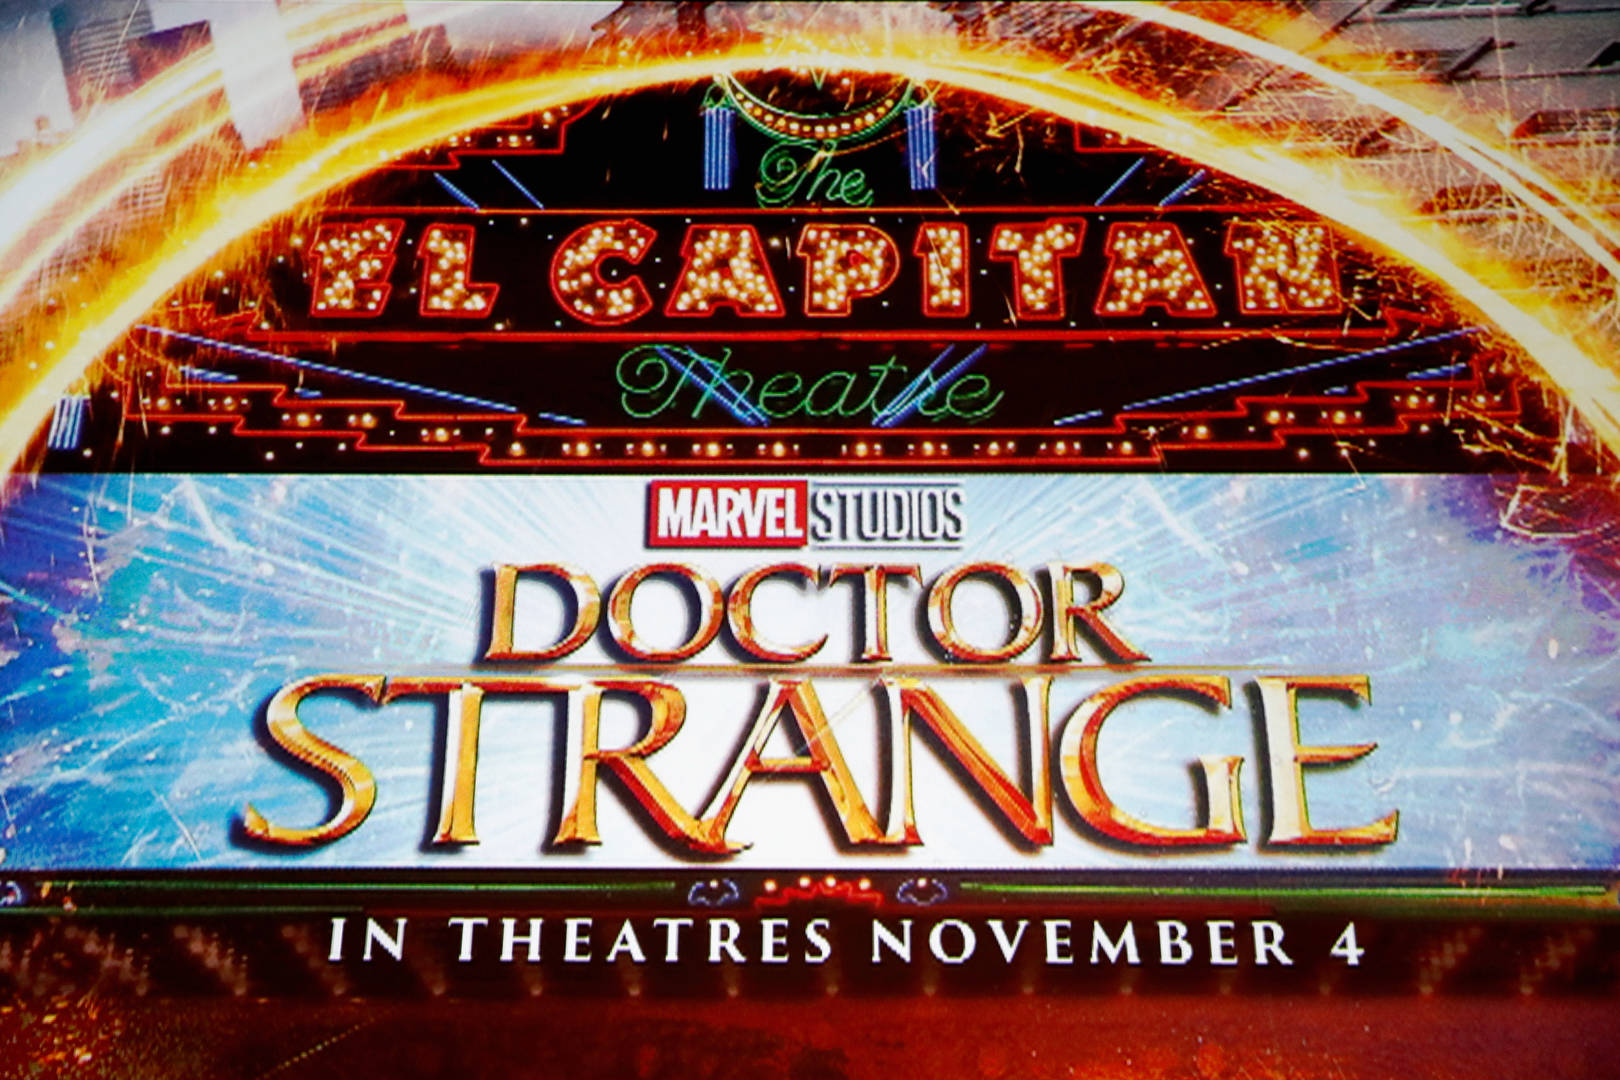 Doctor Strange sequel moving forward with original director Scott Derrickson